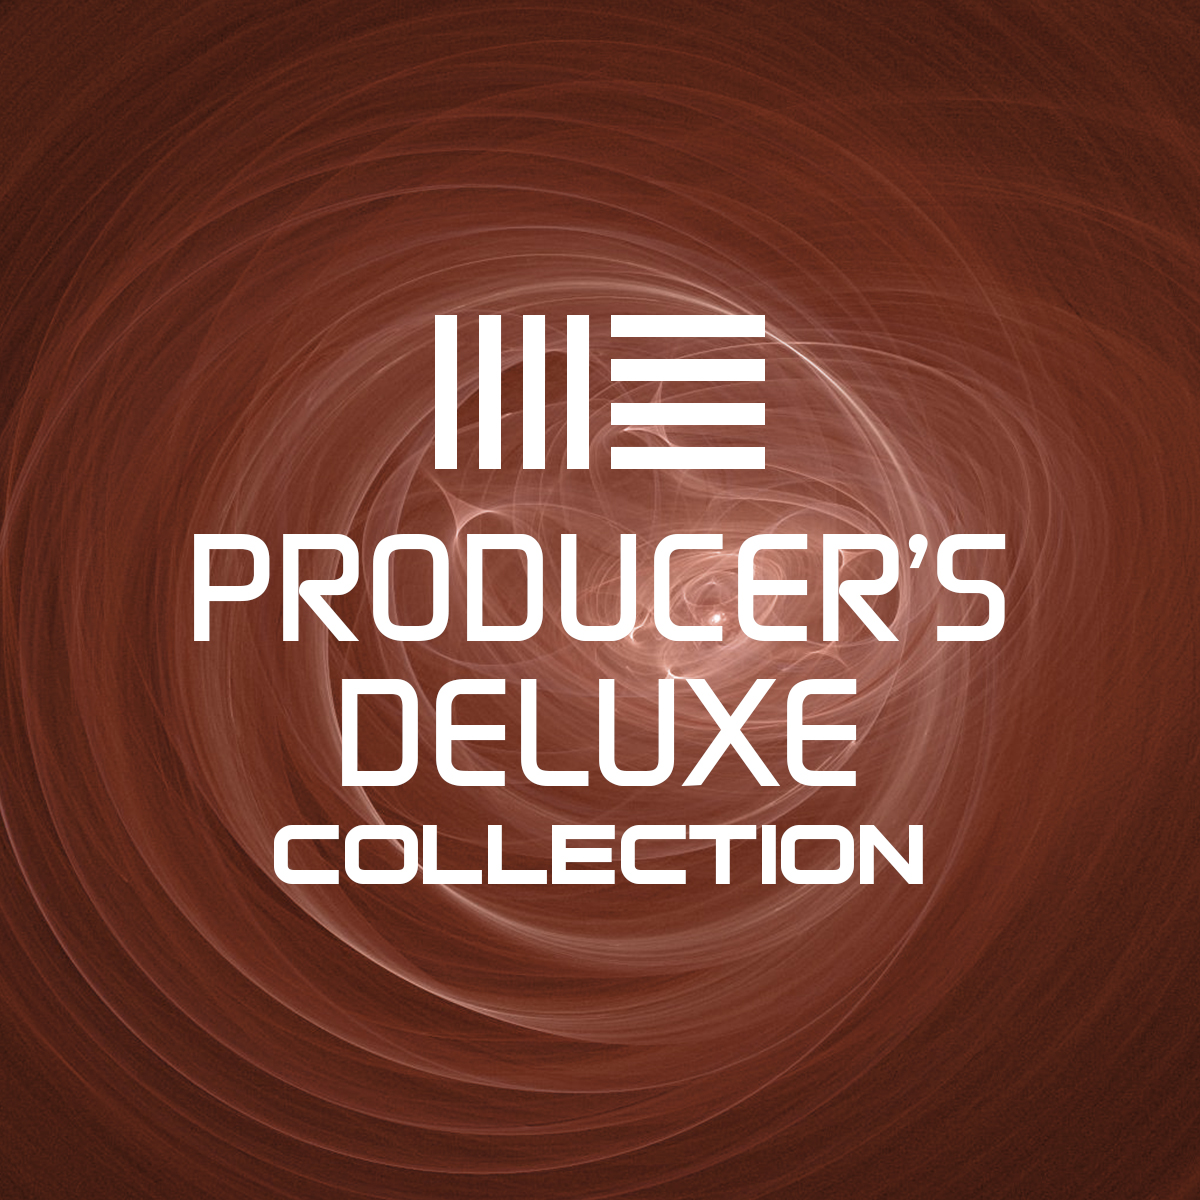 Producers Deluxe Collection - Music Software Training - Jason Timothy